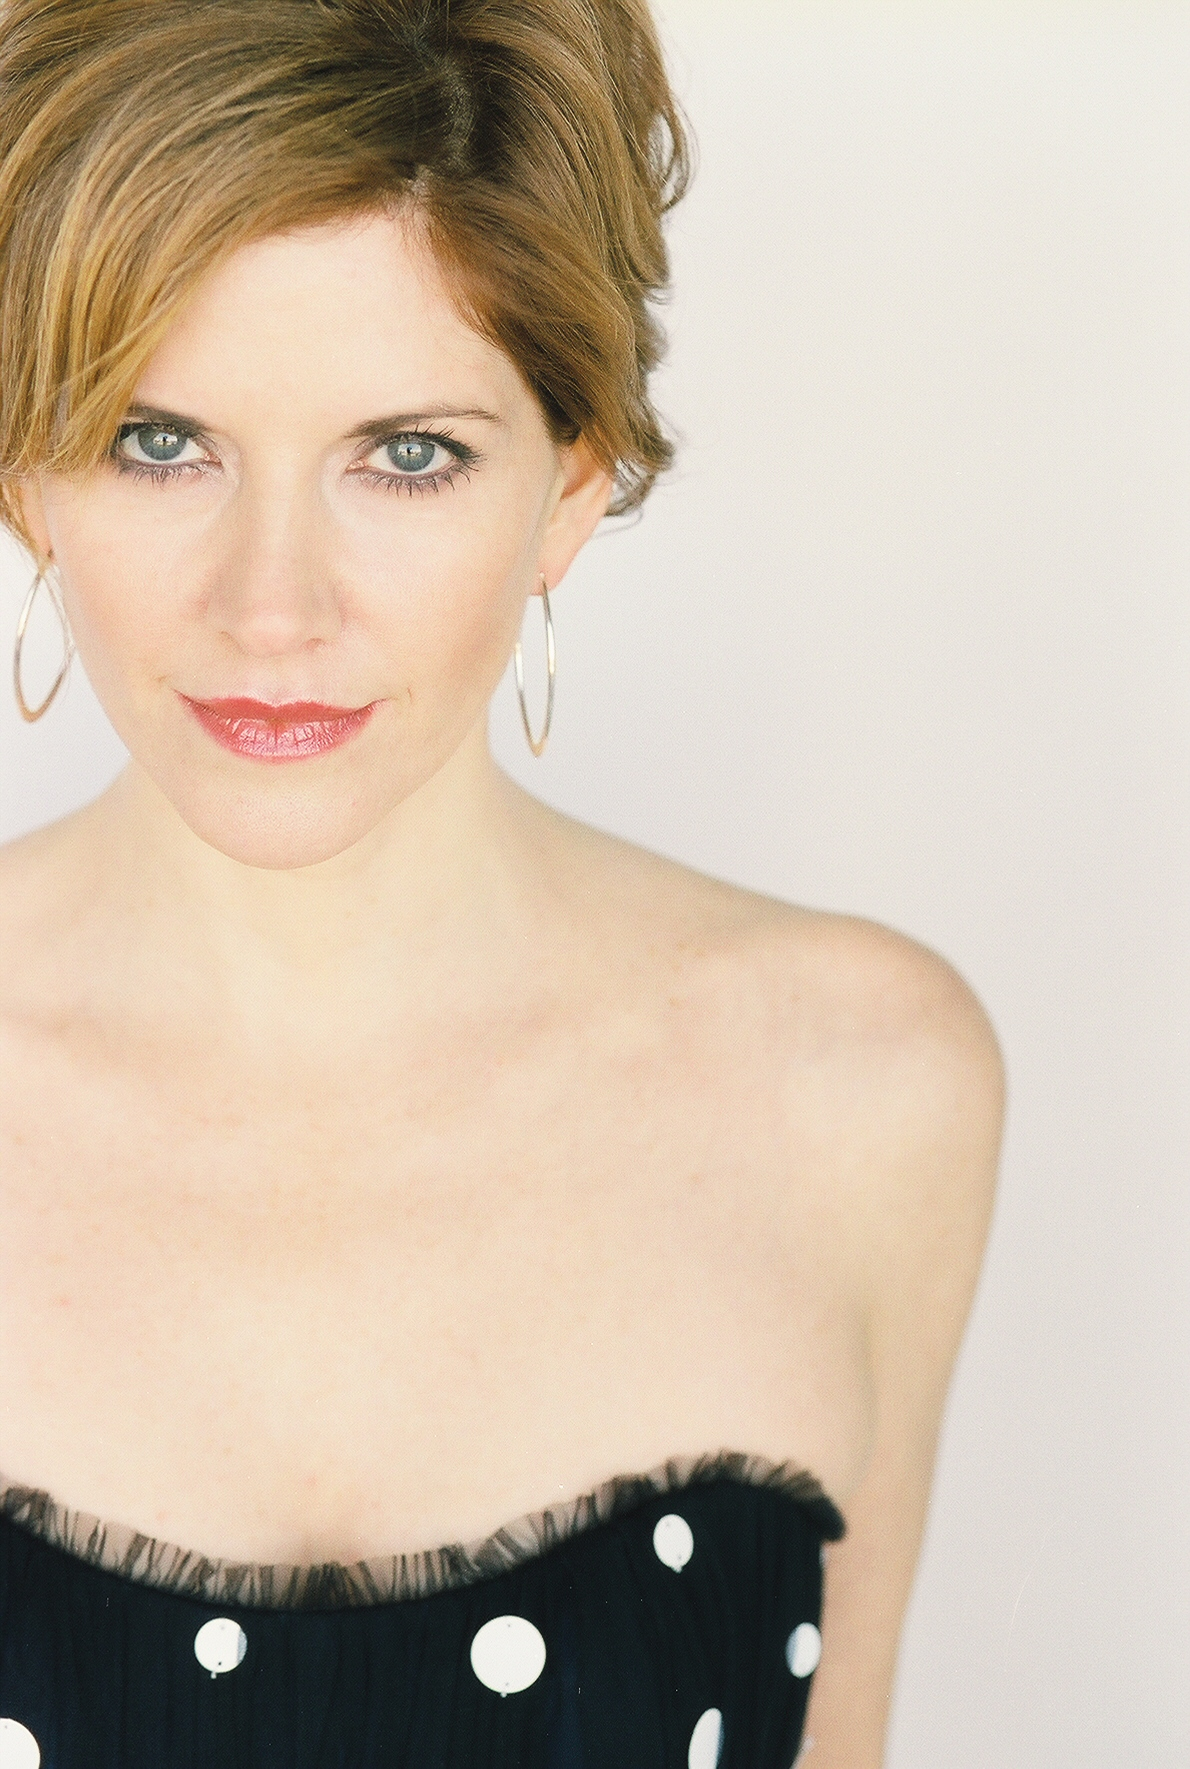 Melinda McGraw Picture 1 - The X-Files - I Want to